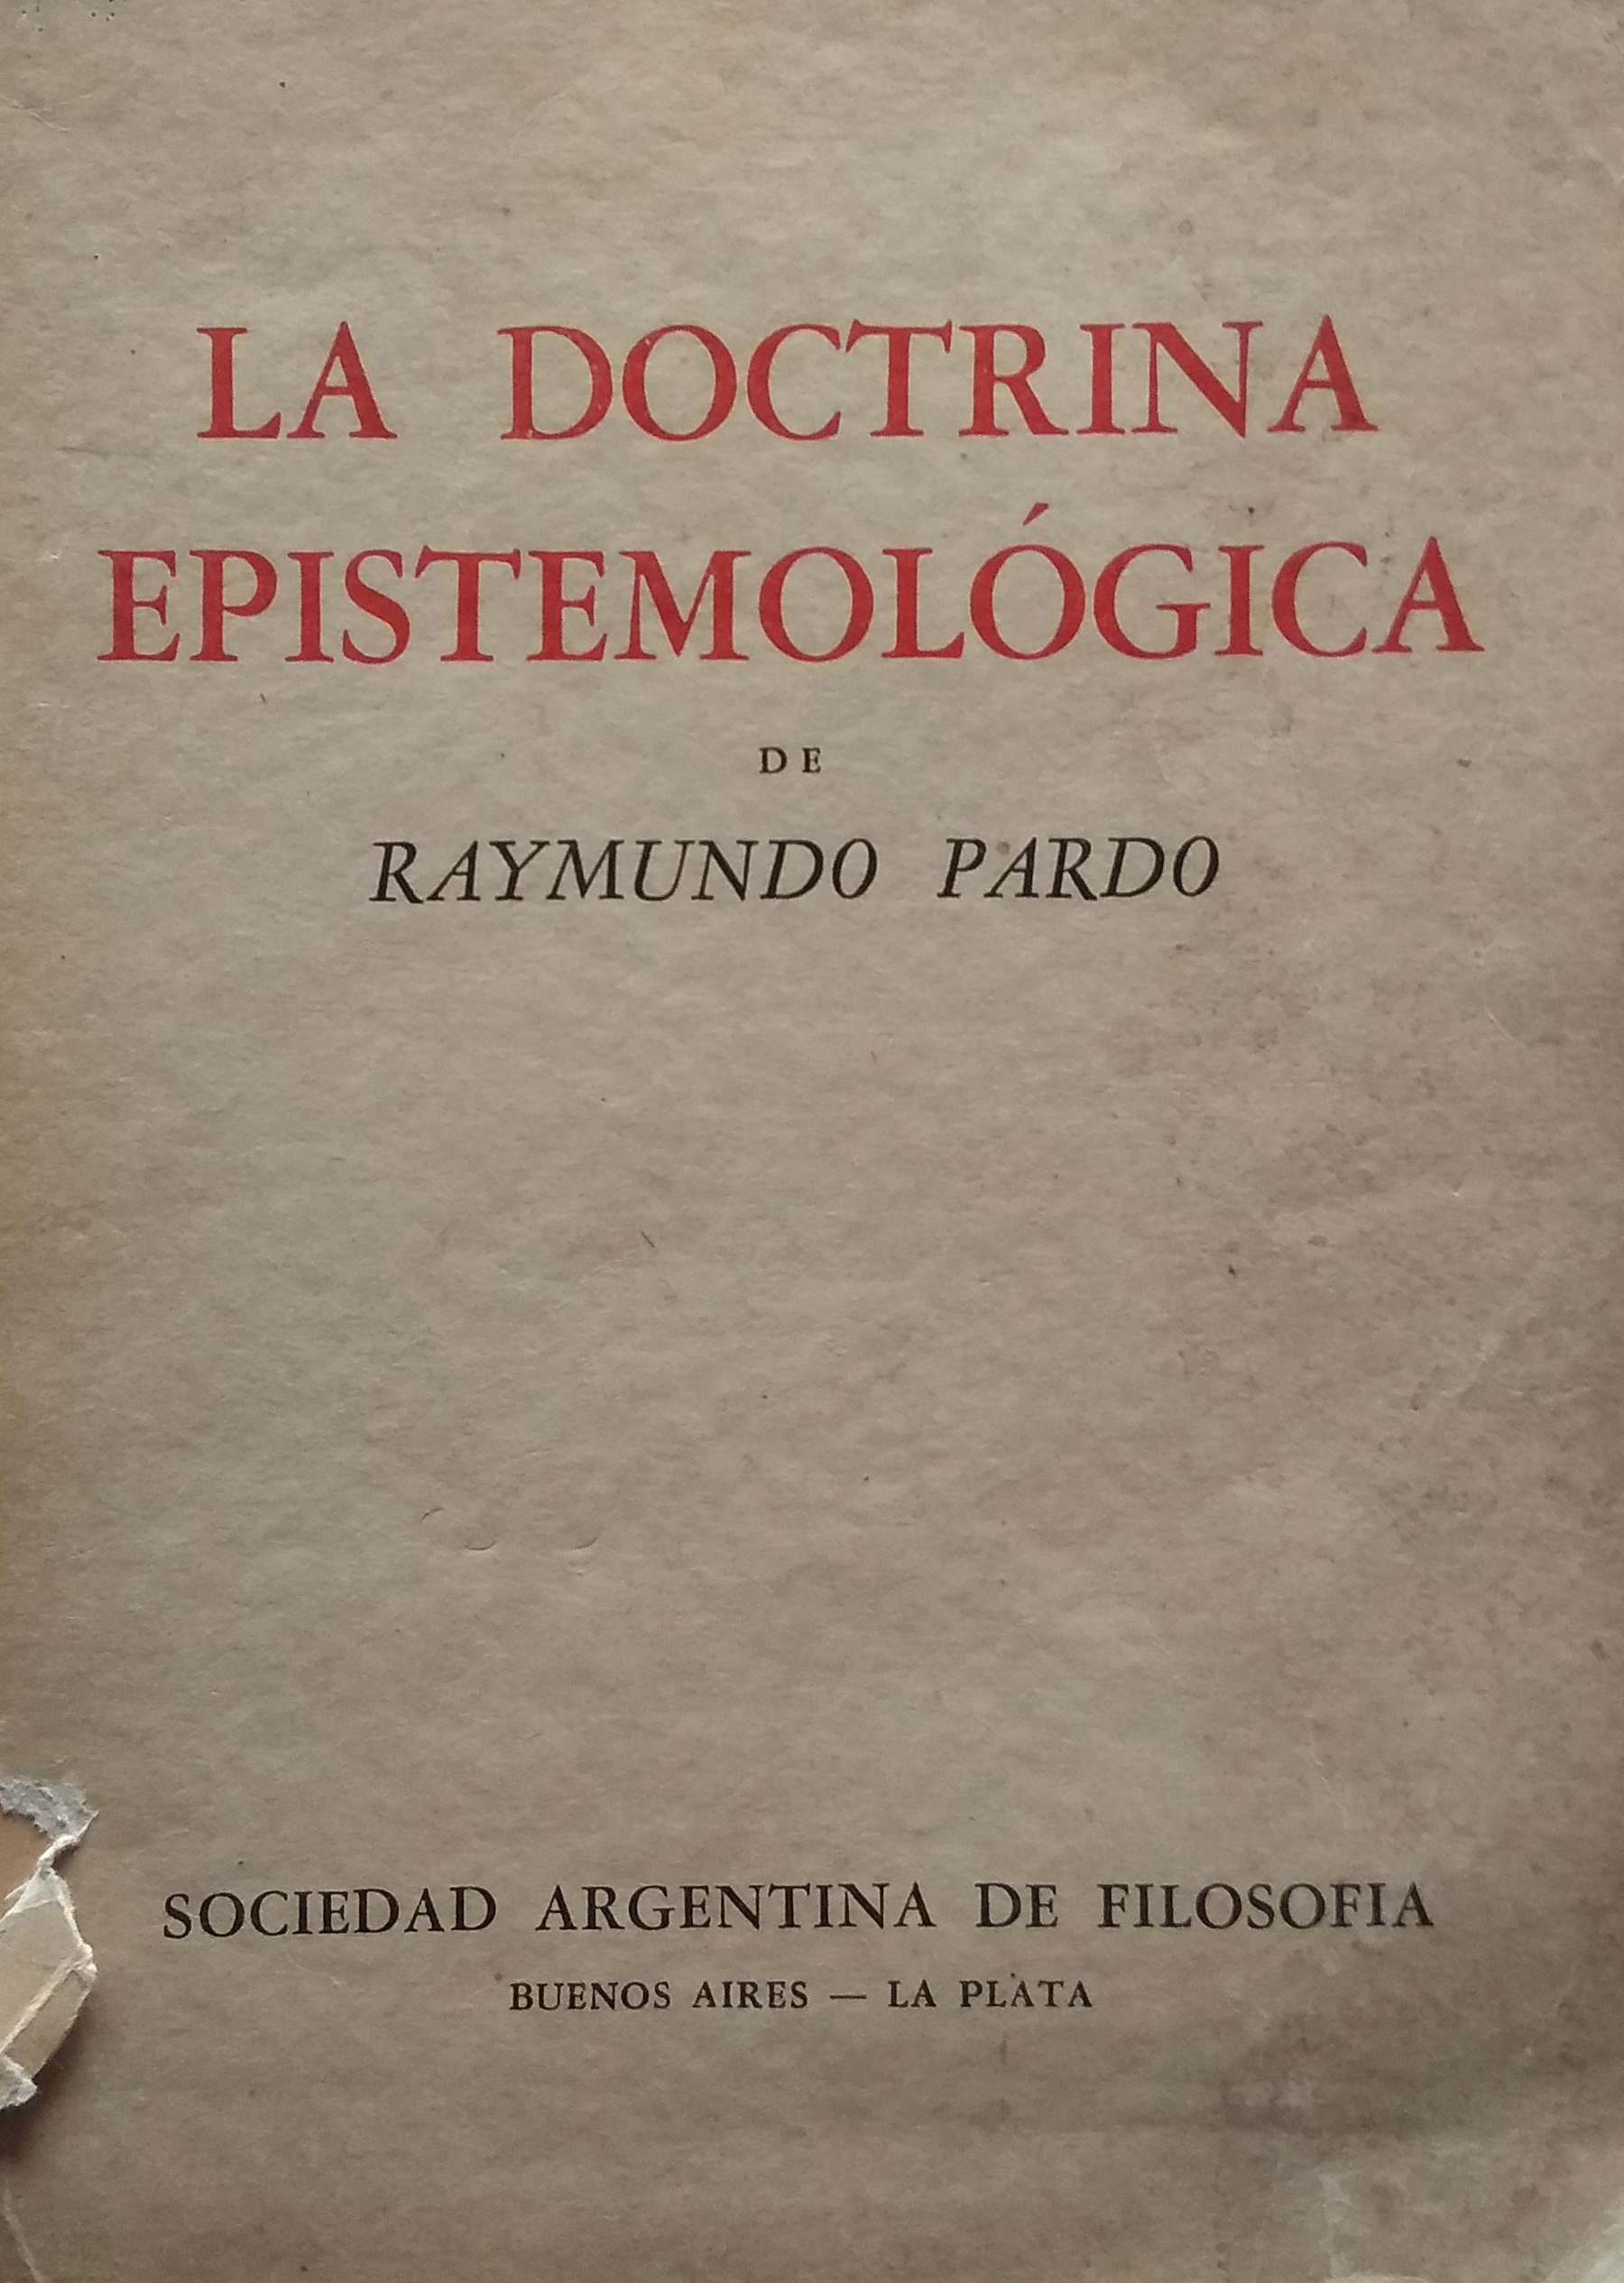 La doctrina epistemologica